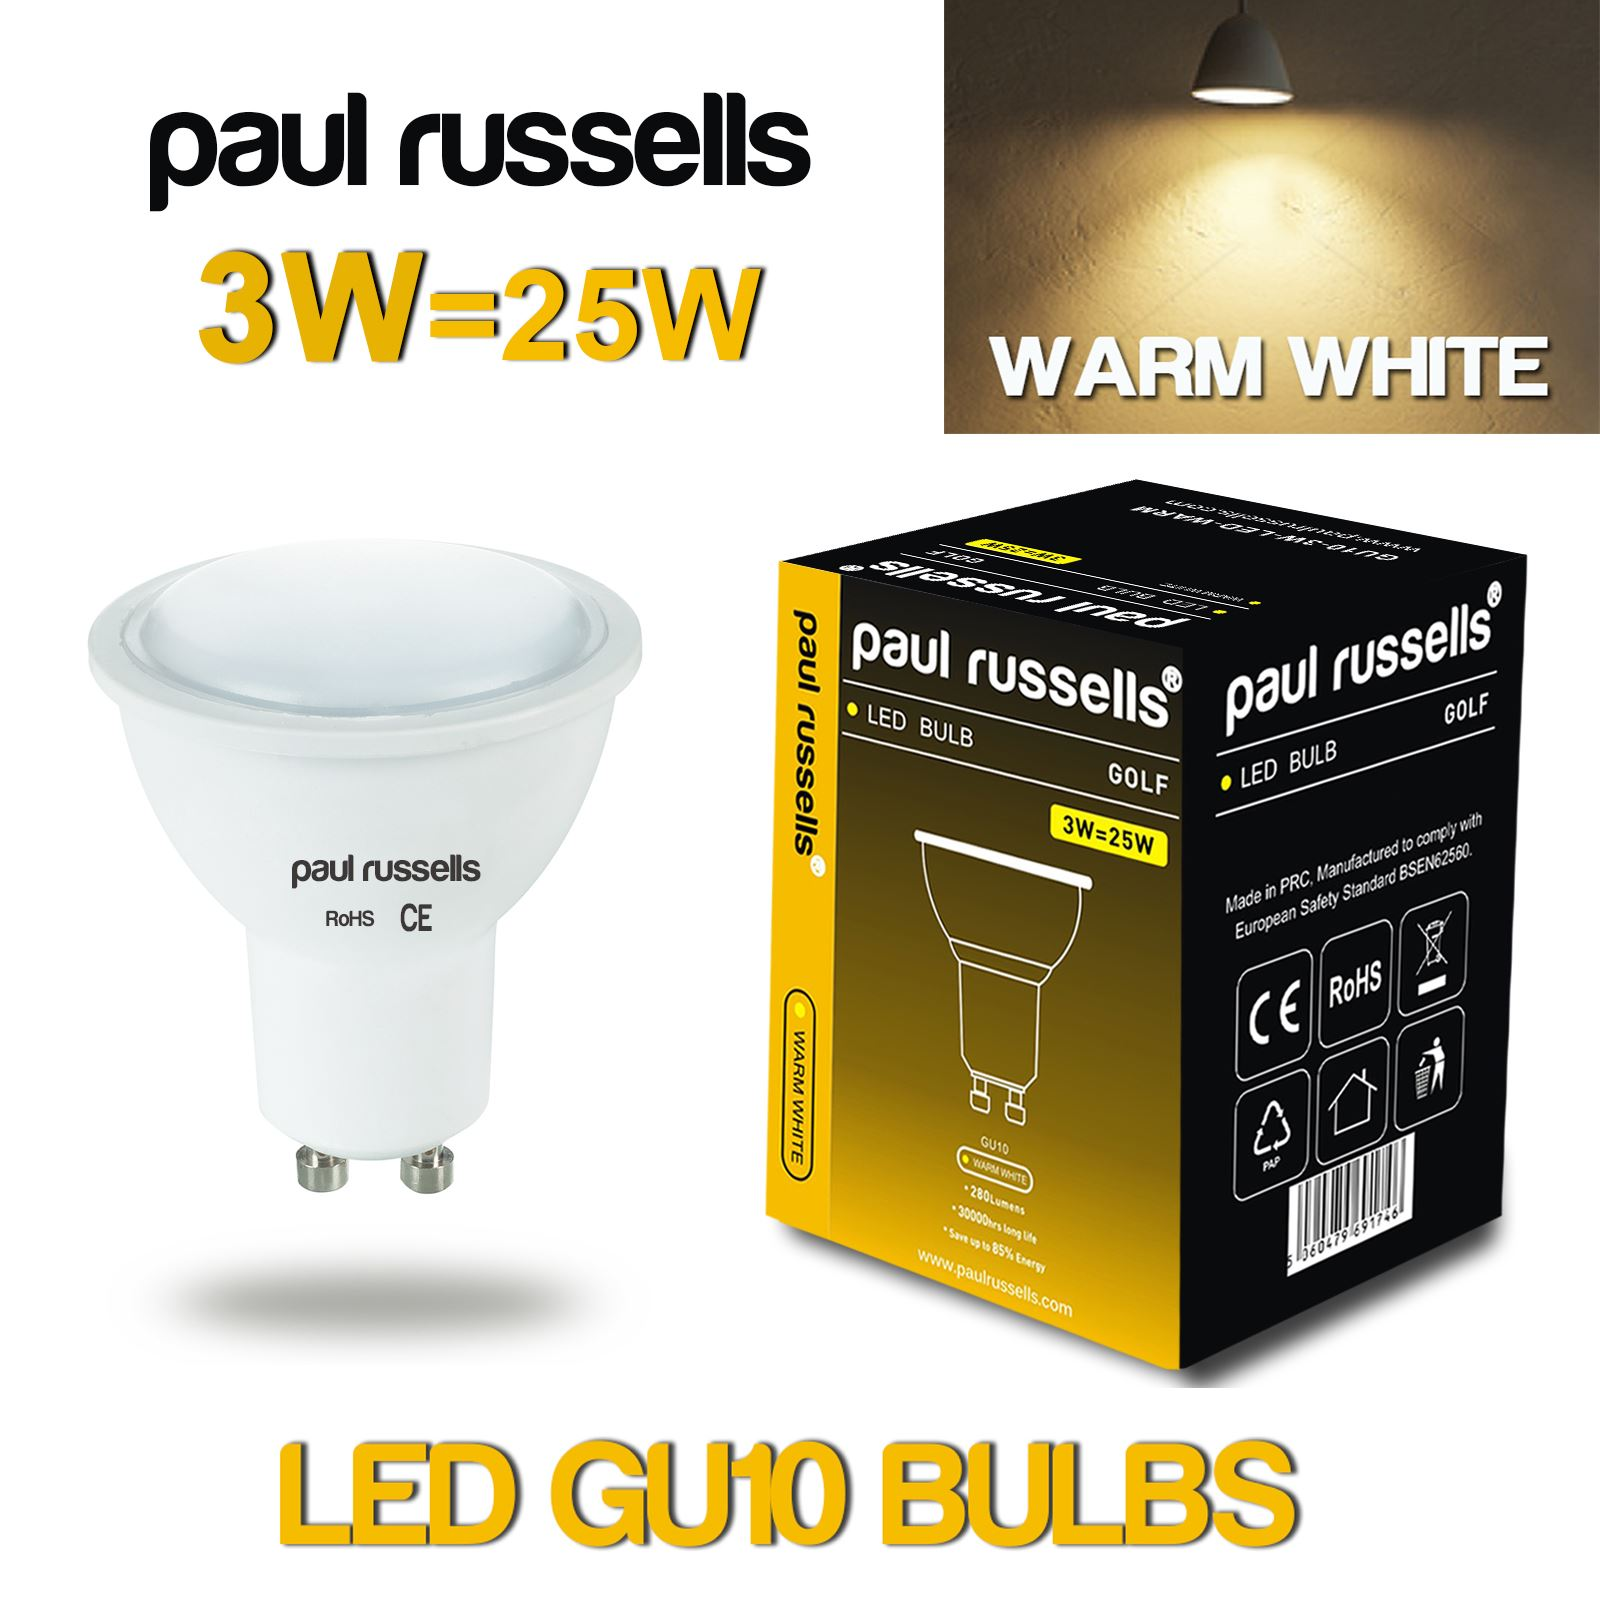 Gu10 led light bulbs 25w 40w 50w halogen bulbs replacement gu10 led light bulbs 25w 40w 50w halogen mozeypictures Choice Image